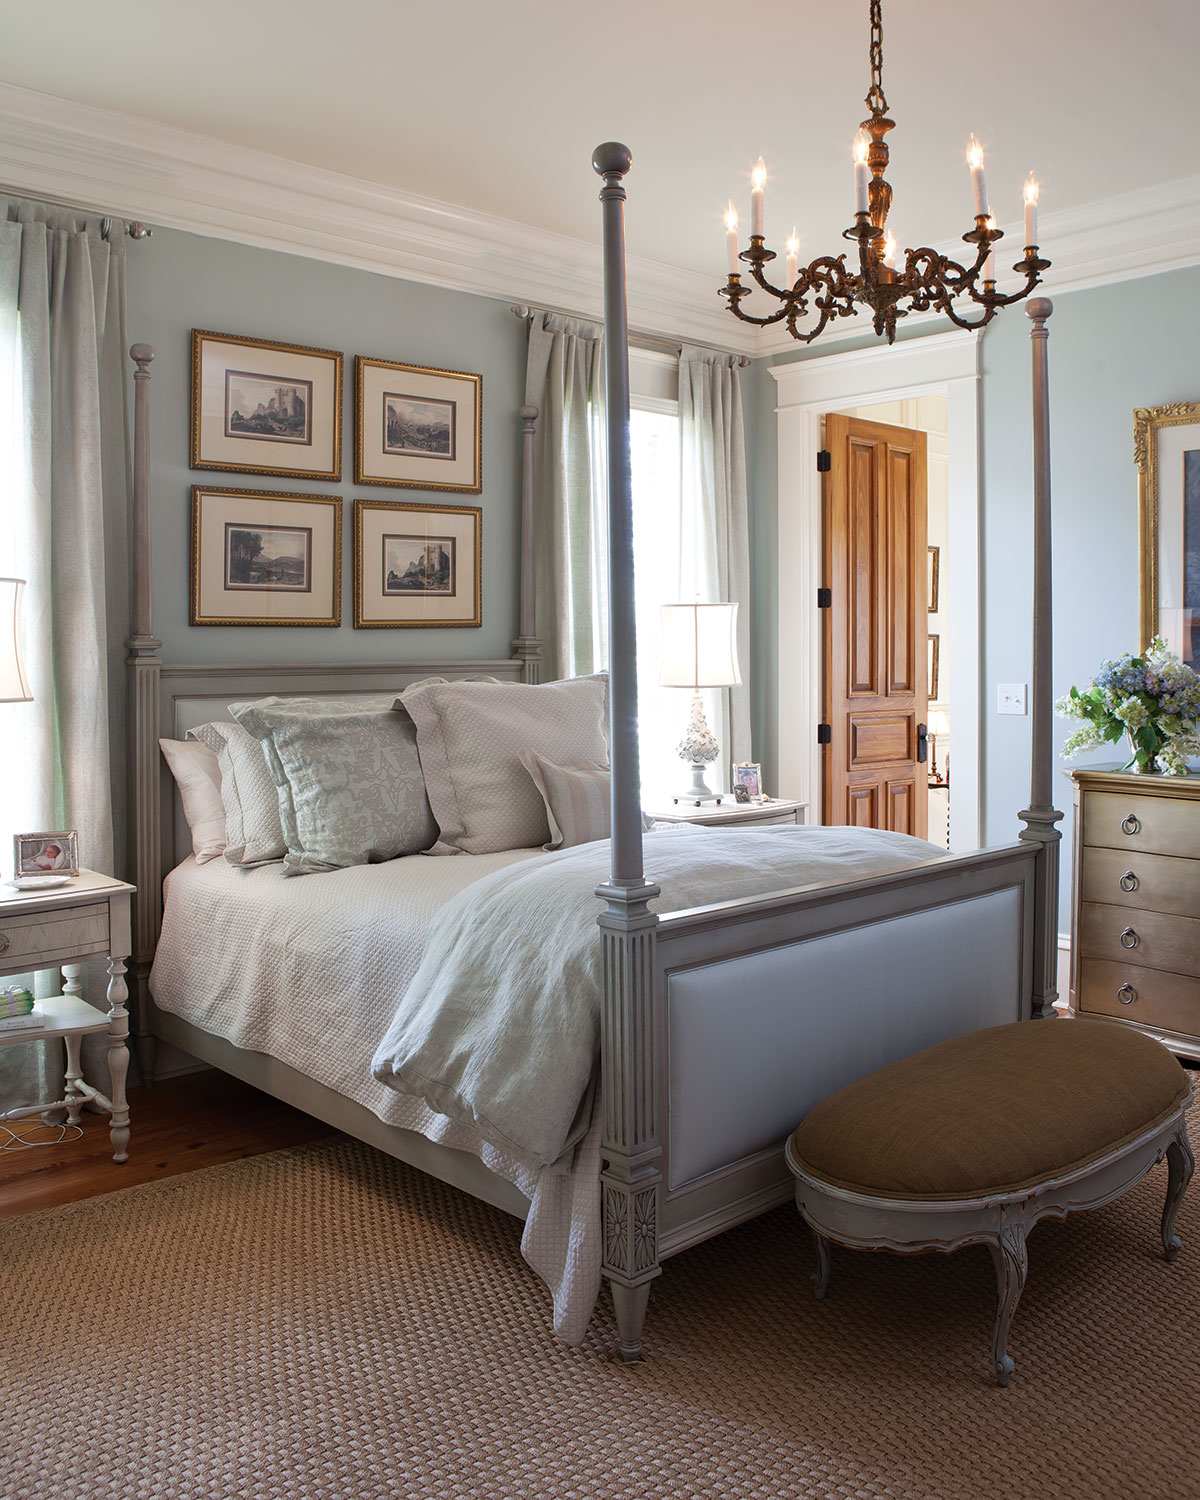 10 Dreamy Southern Bedrooms Page 3 Of 10 Southern Lady